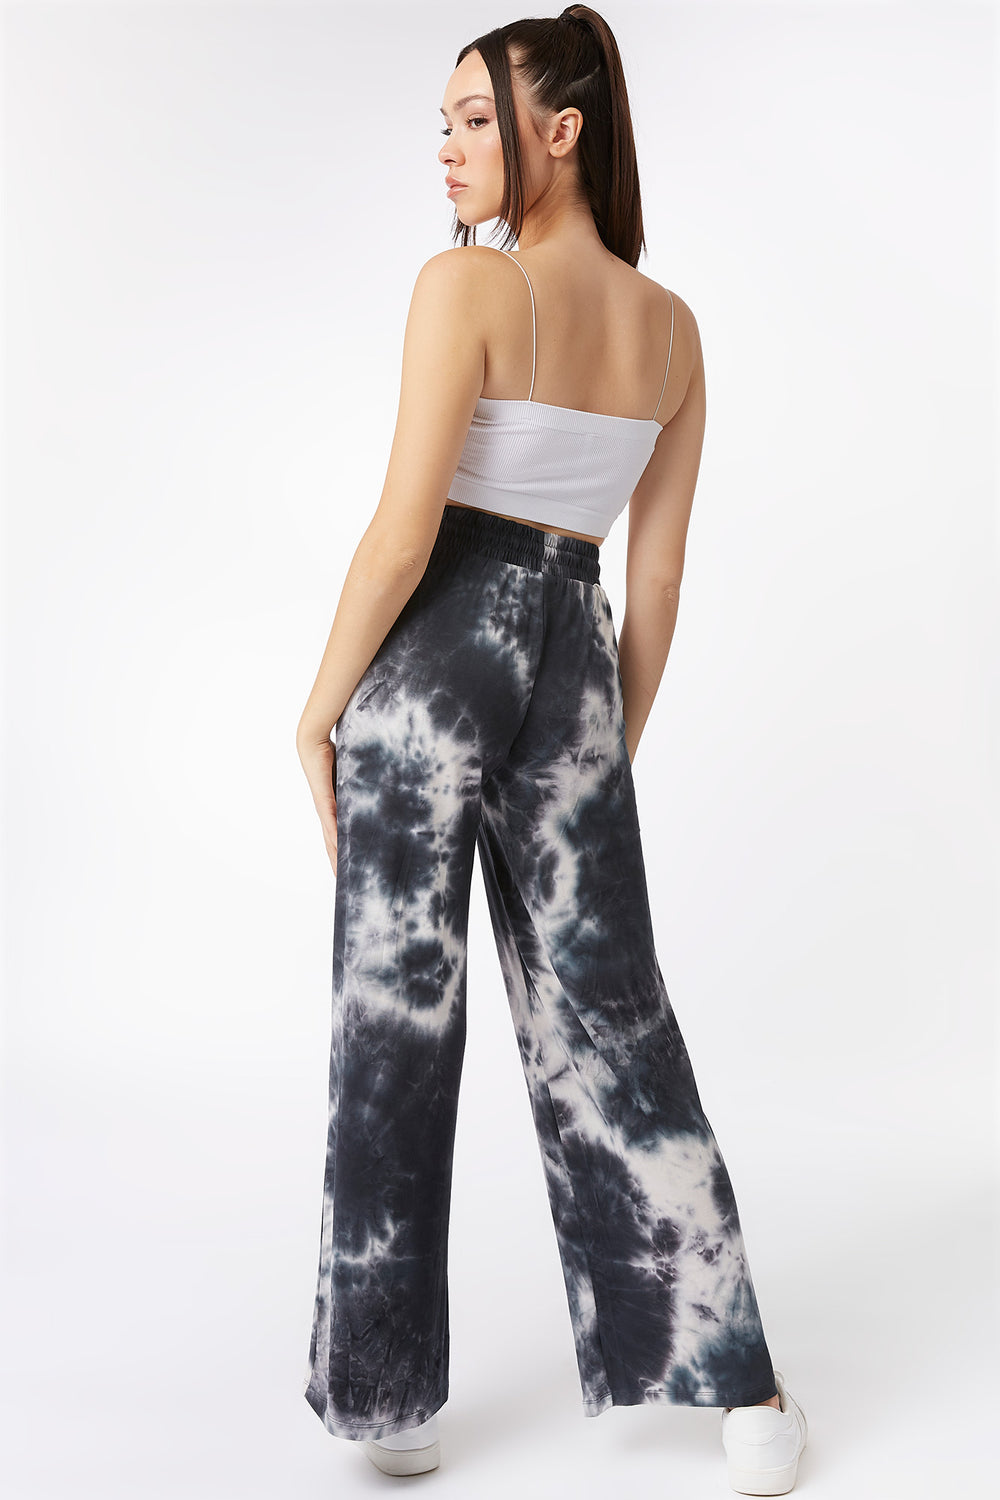 Black Tie-Dye Crepe Drawstring Palazzo Pant Black with White